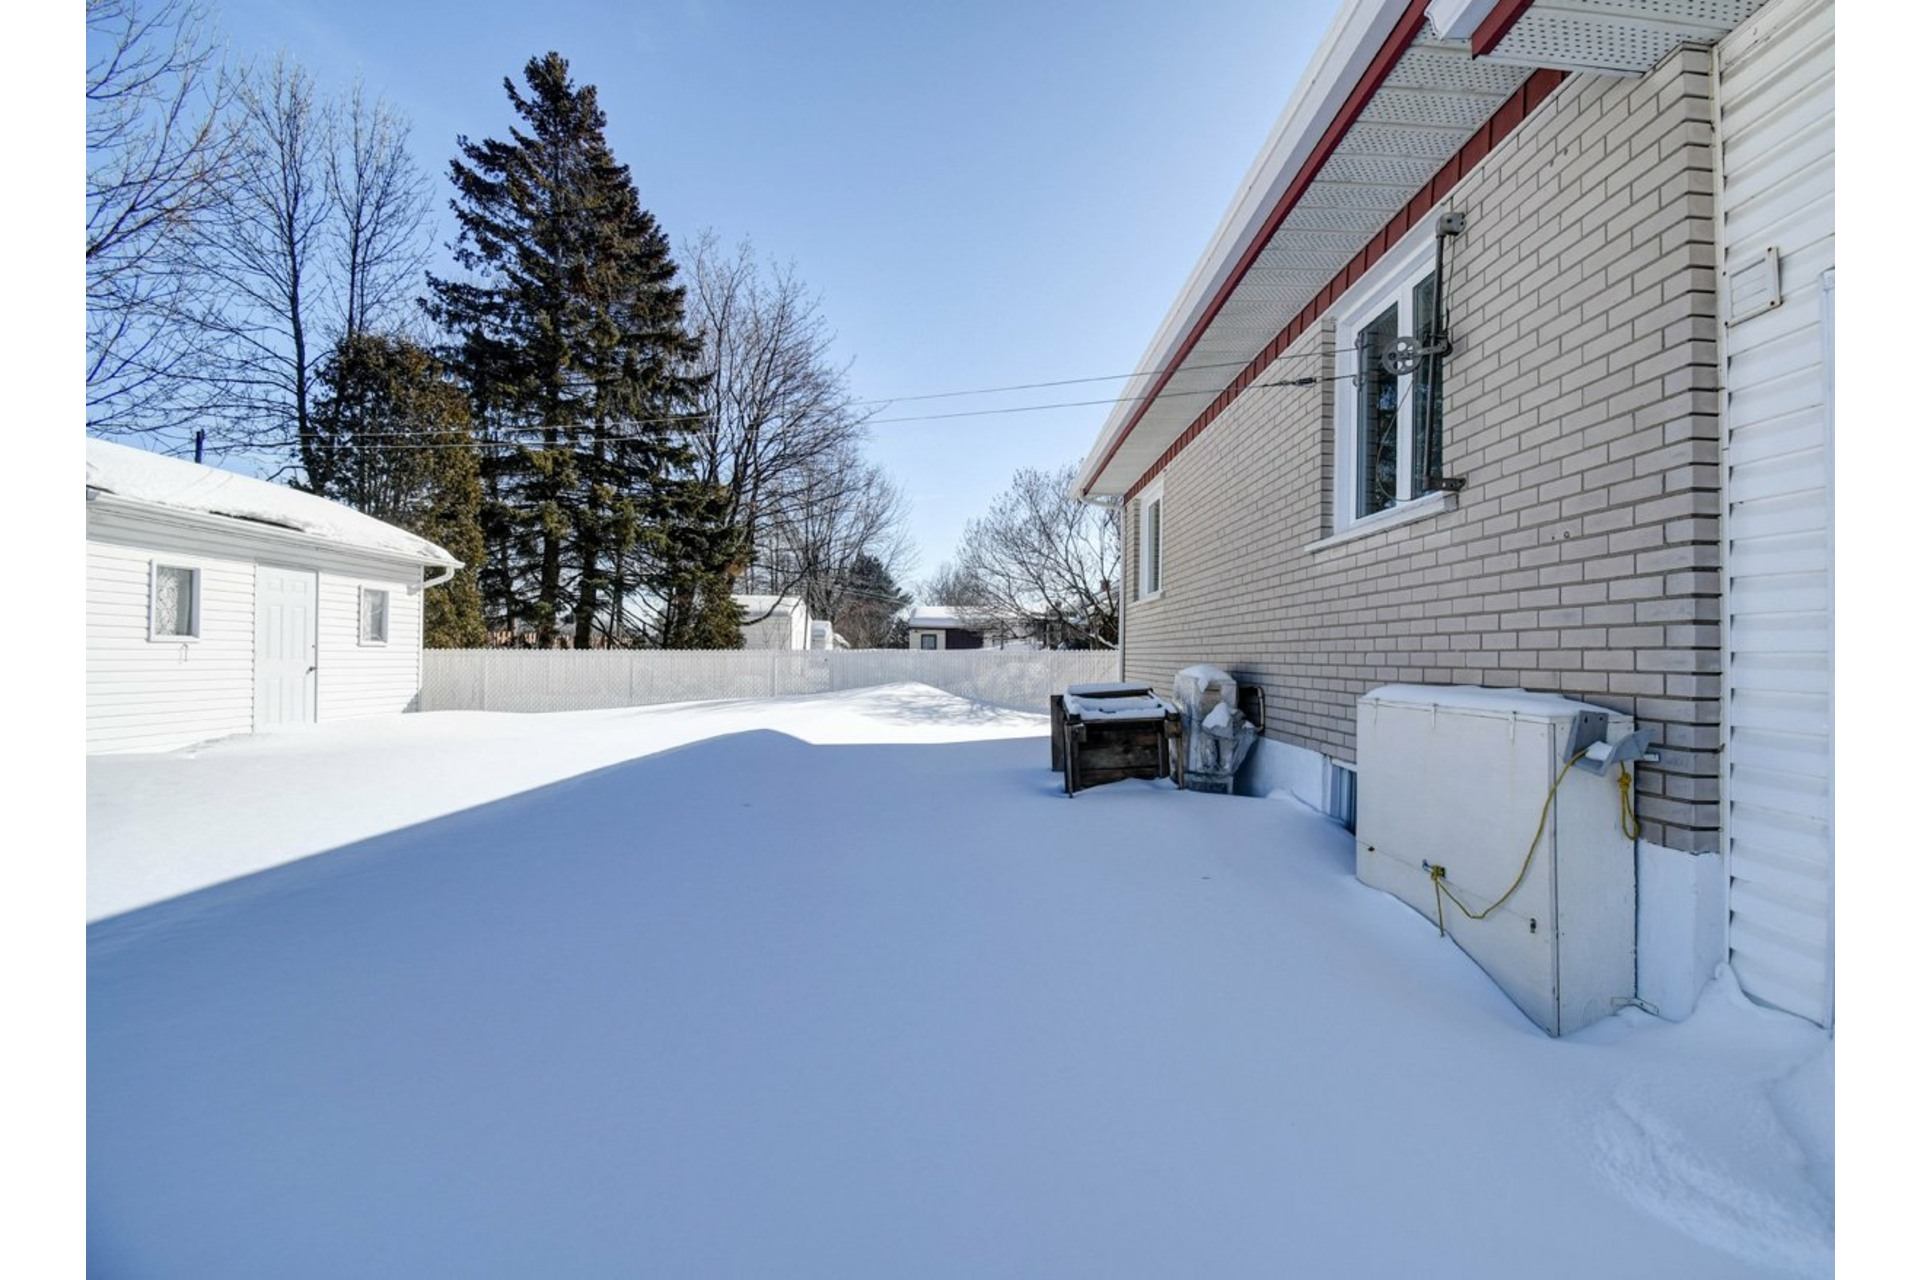 image 5 - House For sale Shawinigan - 9 rooms